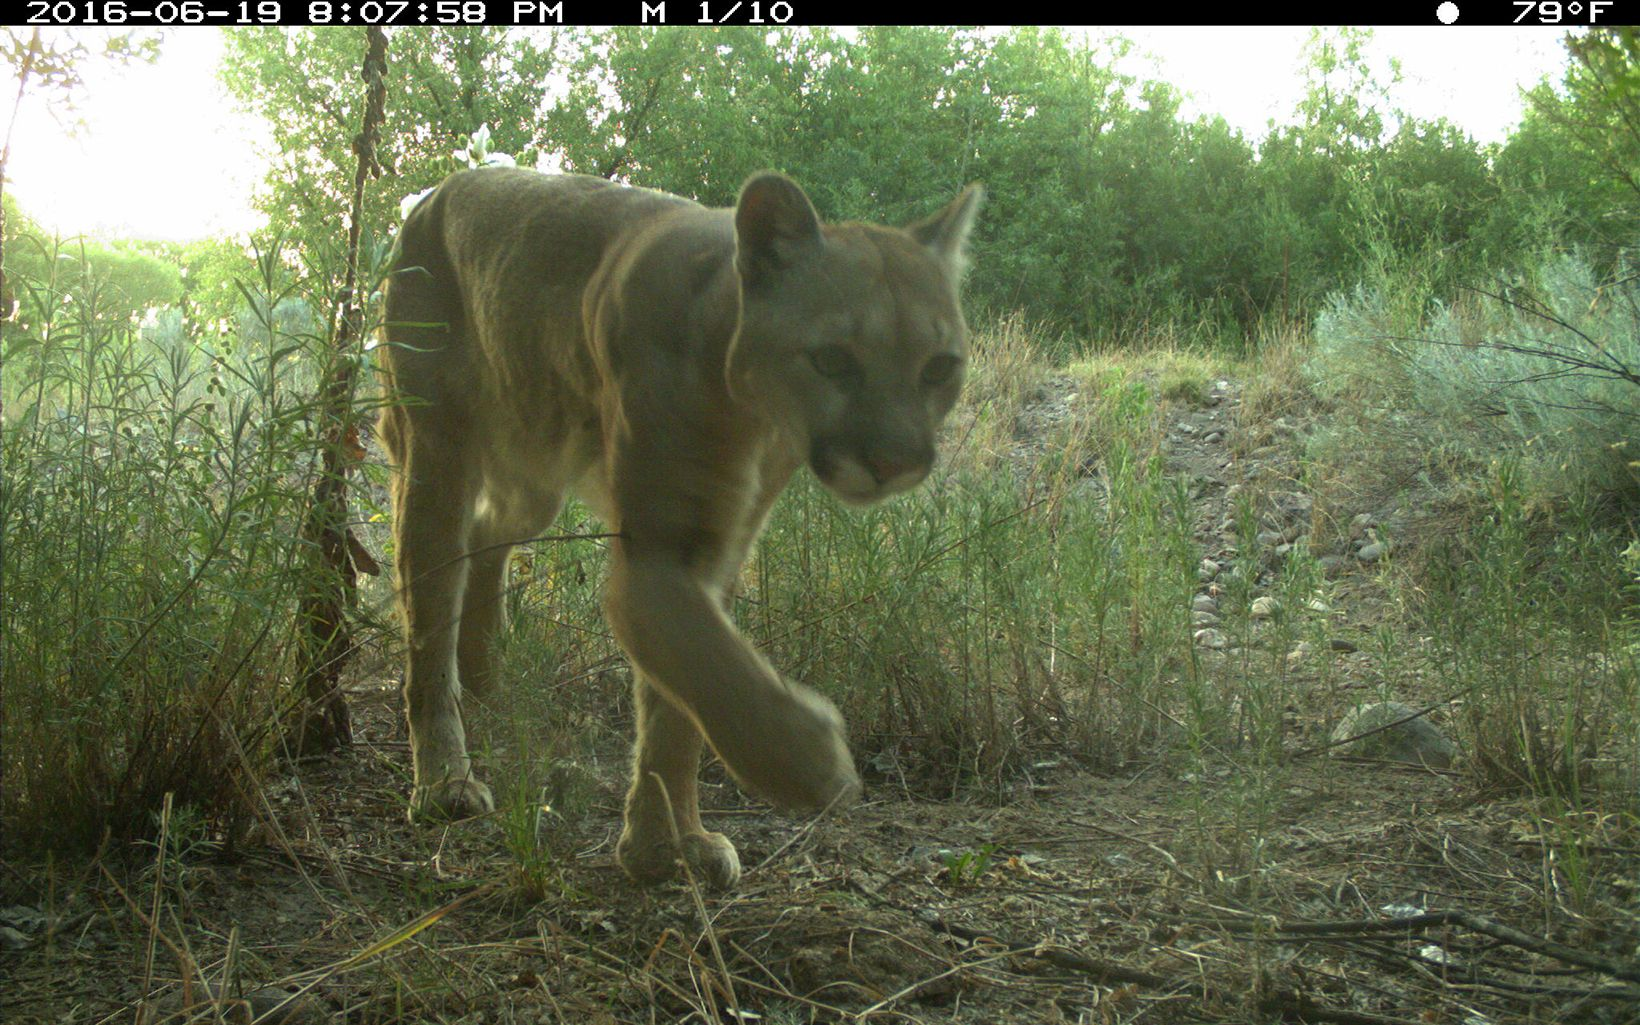 Mountain lion walks through low brush.